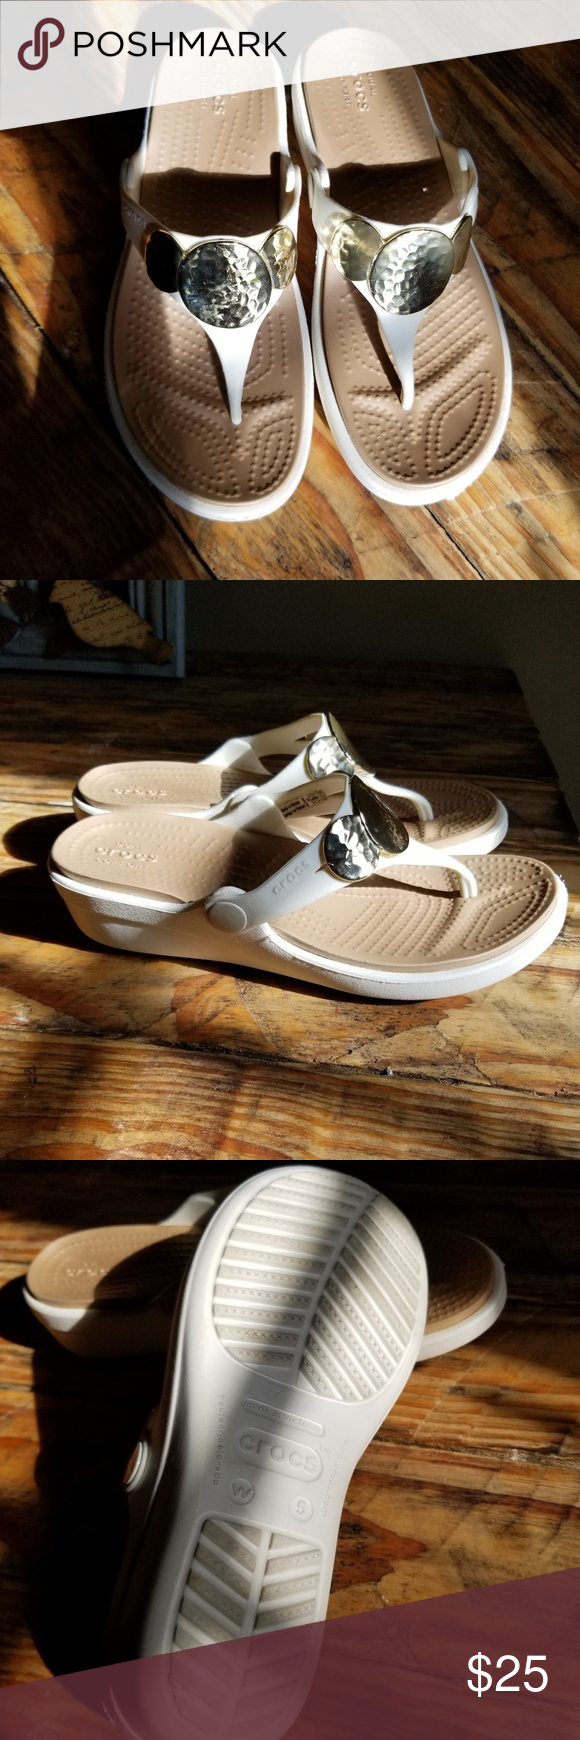 Crocs White Gold Tan Thong Low Wedge Sandal 5 Beautiful like new croc flip flop signals with gold toned embellishment. Heel is 1